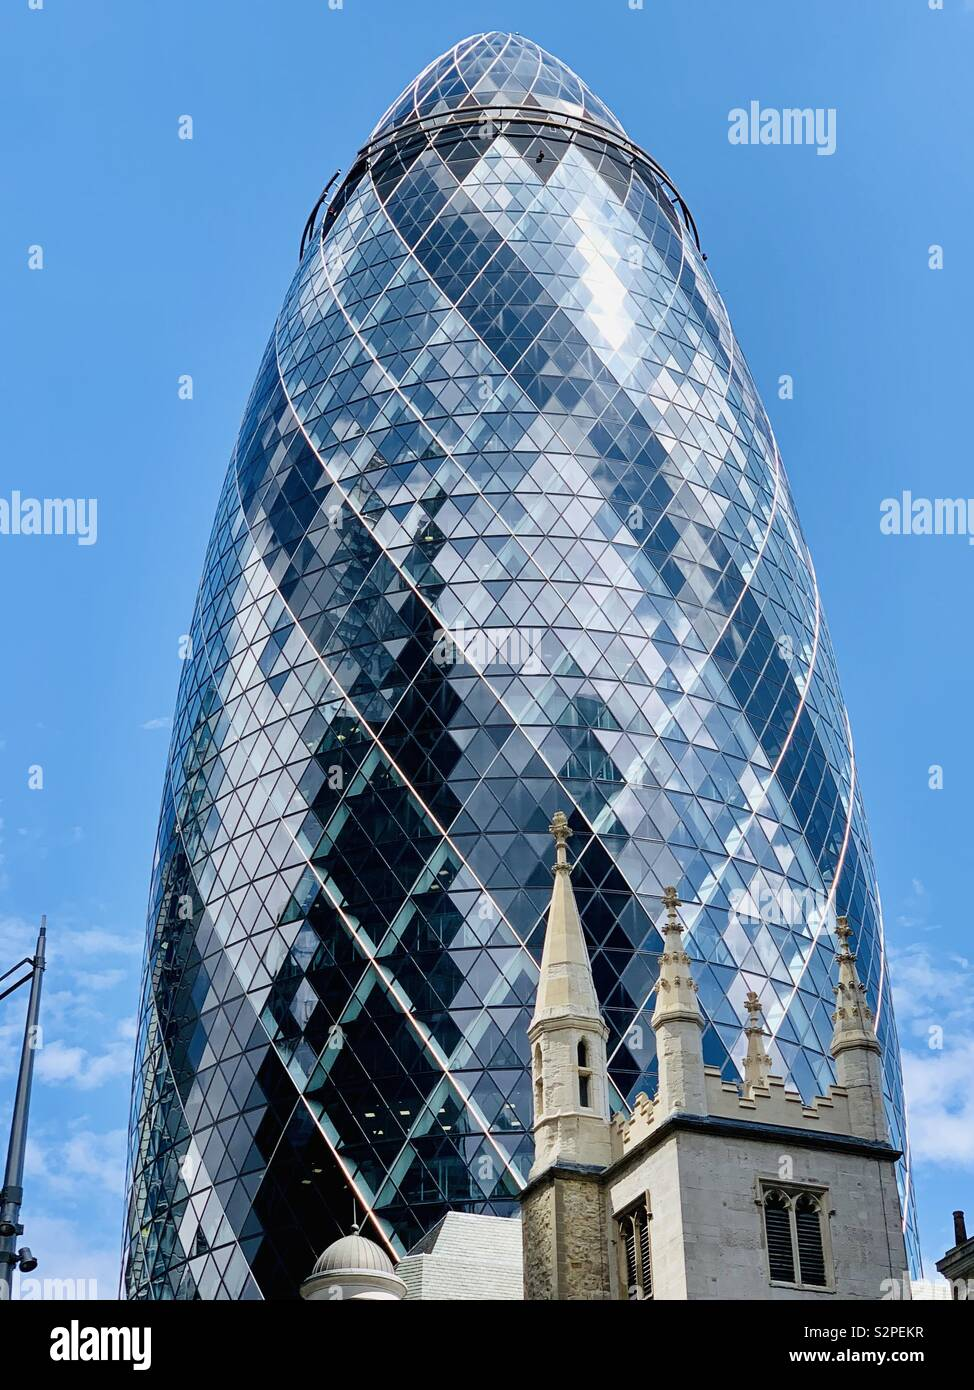 London, UK - 6th June 2019: The Gherkin, St Mary Axe, City of London. - Stock Image